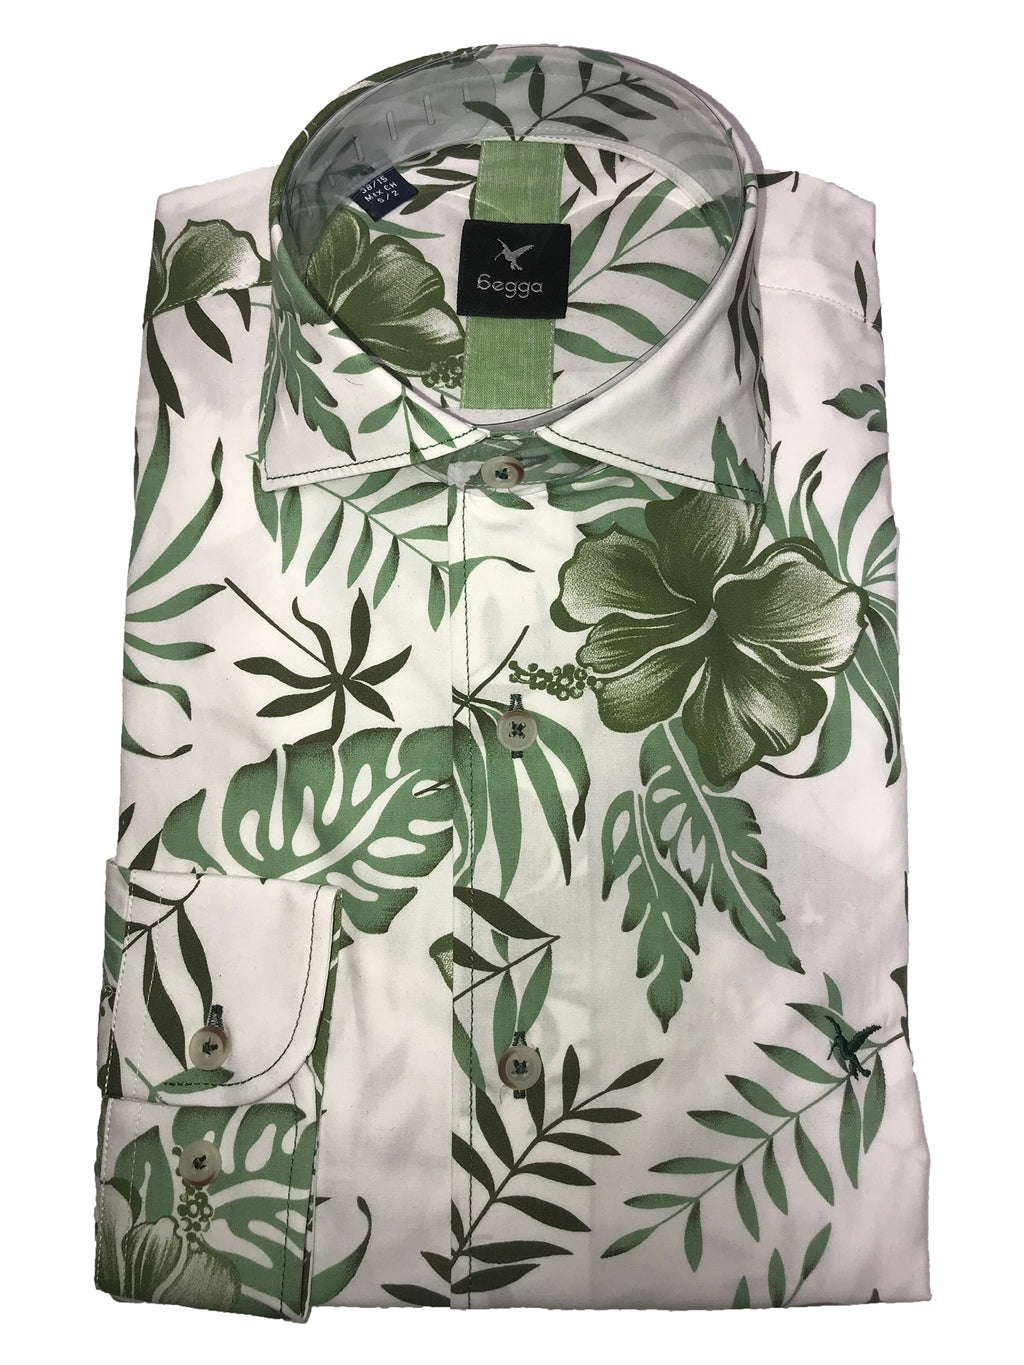 Green Leaf Shirt - S